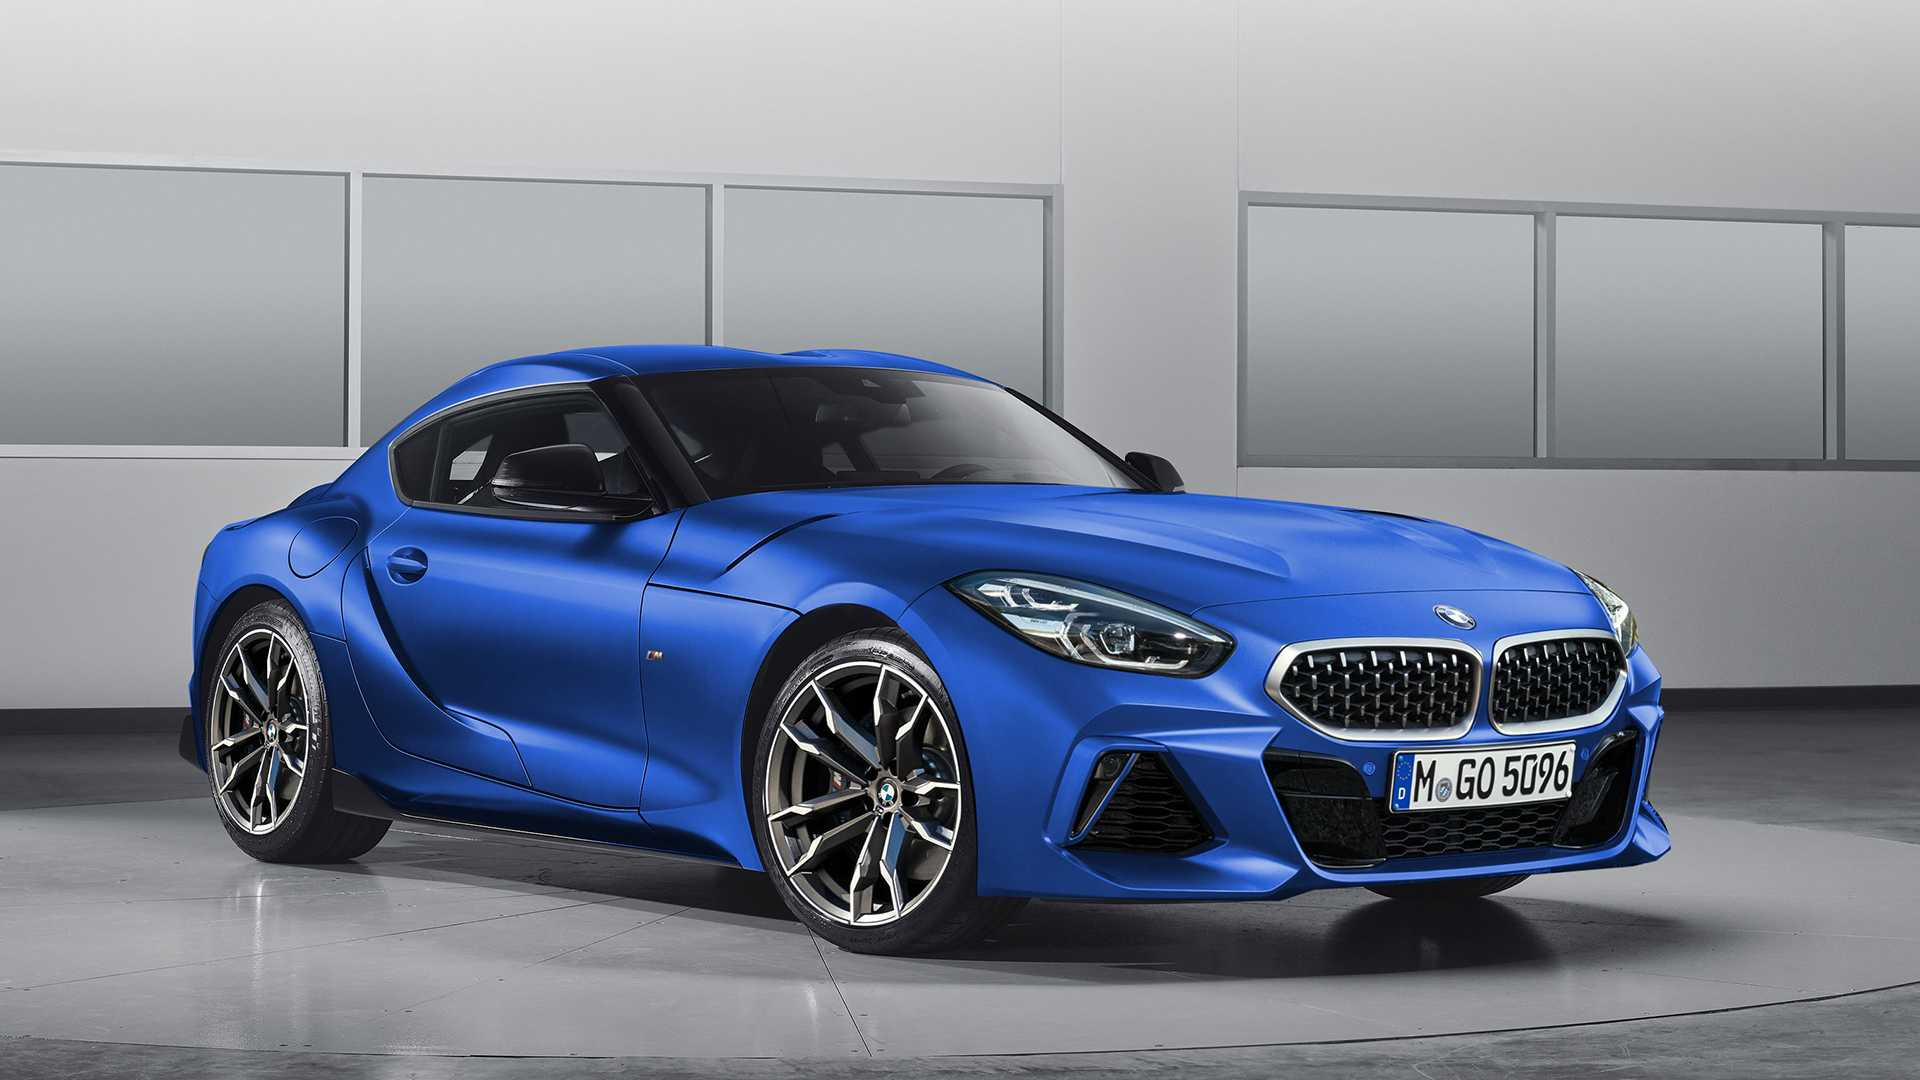 53 The Best 2020 BMW Z4 Roadster History